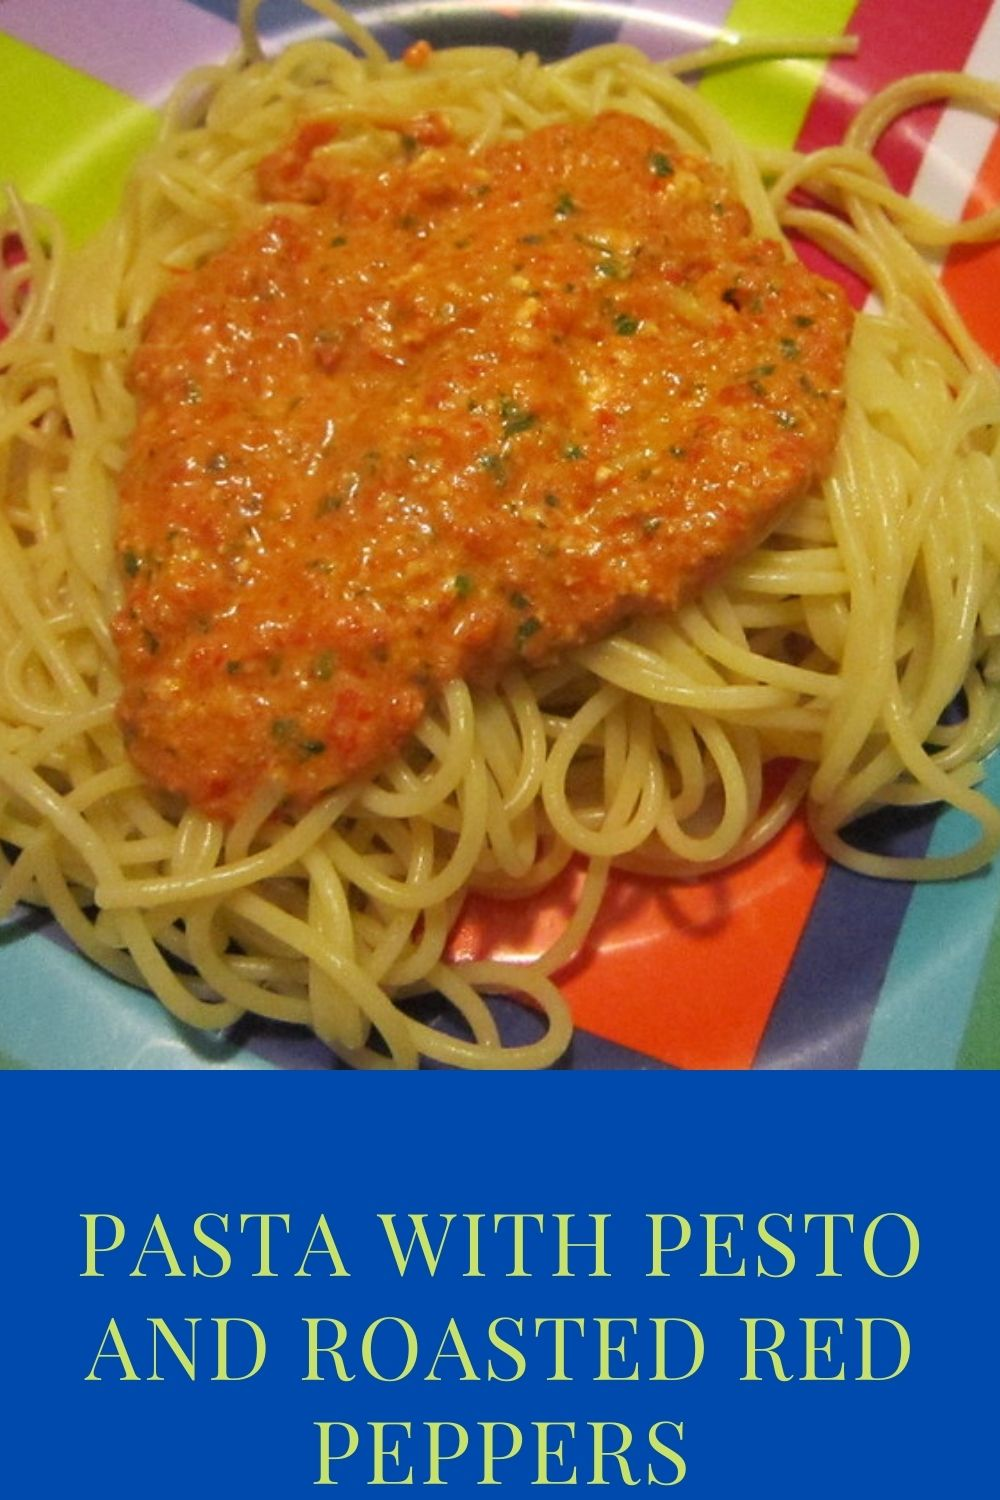 Pasta with Pesto and Roasted Red Peppers